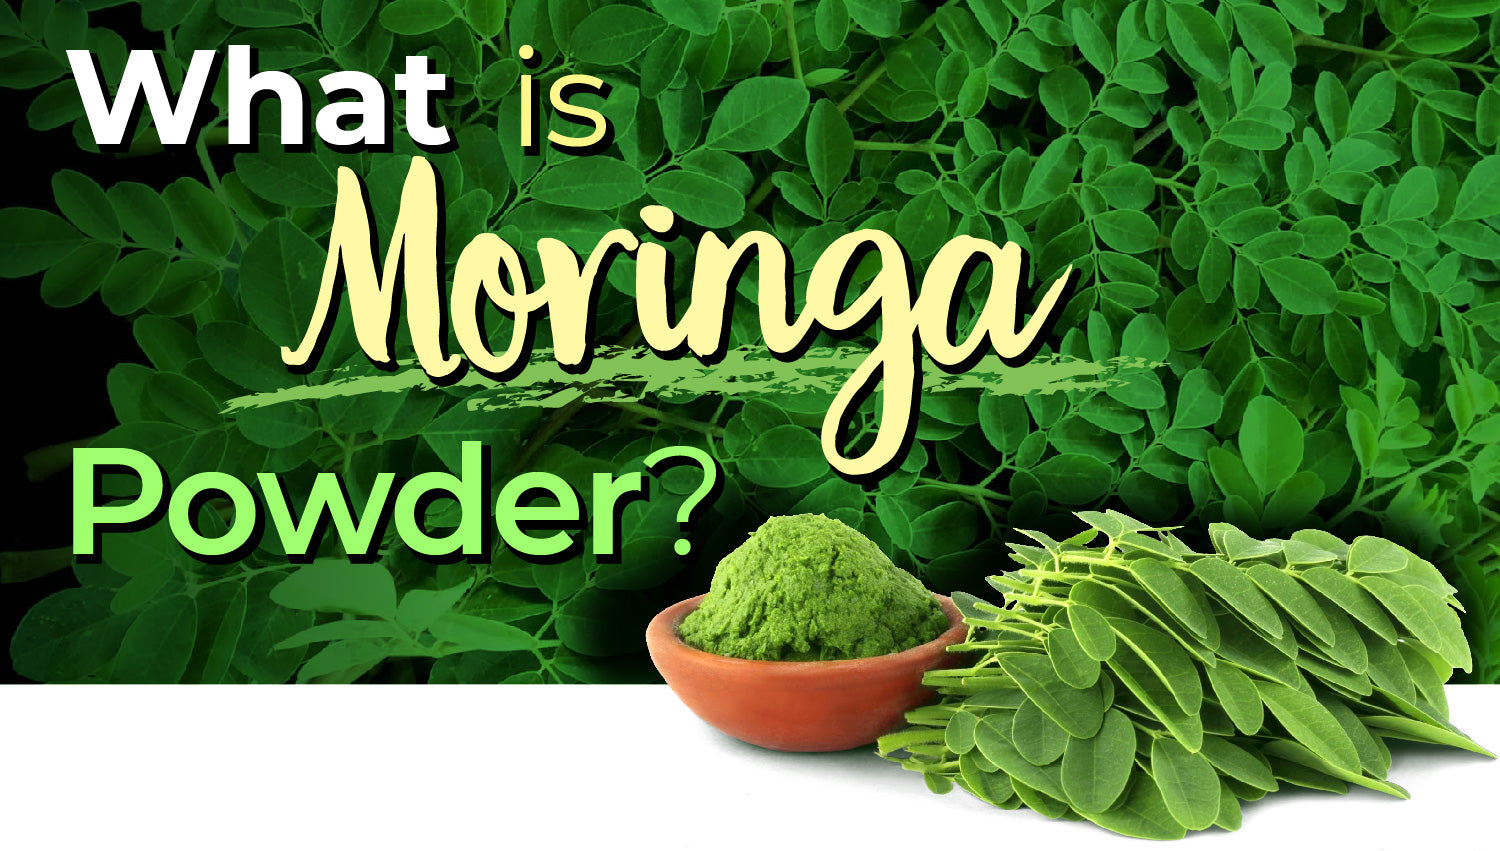 What is Moringa Powder? 3 Simple Ways to Use It | Blog